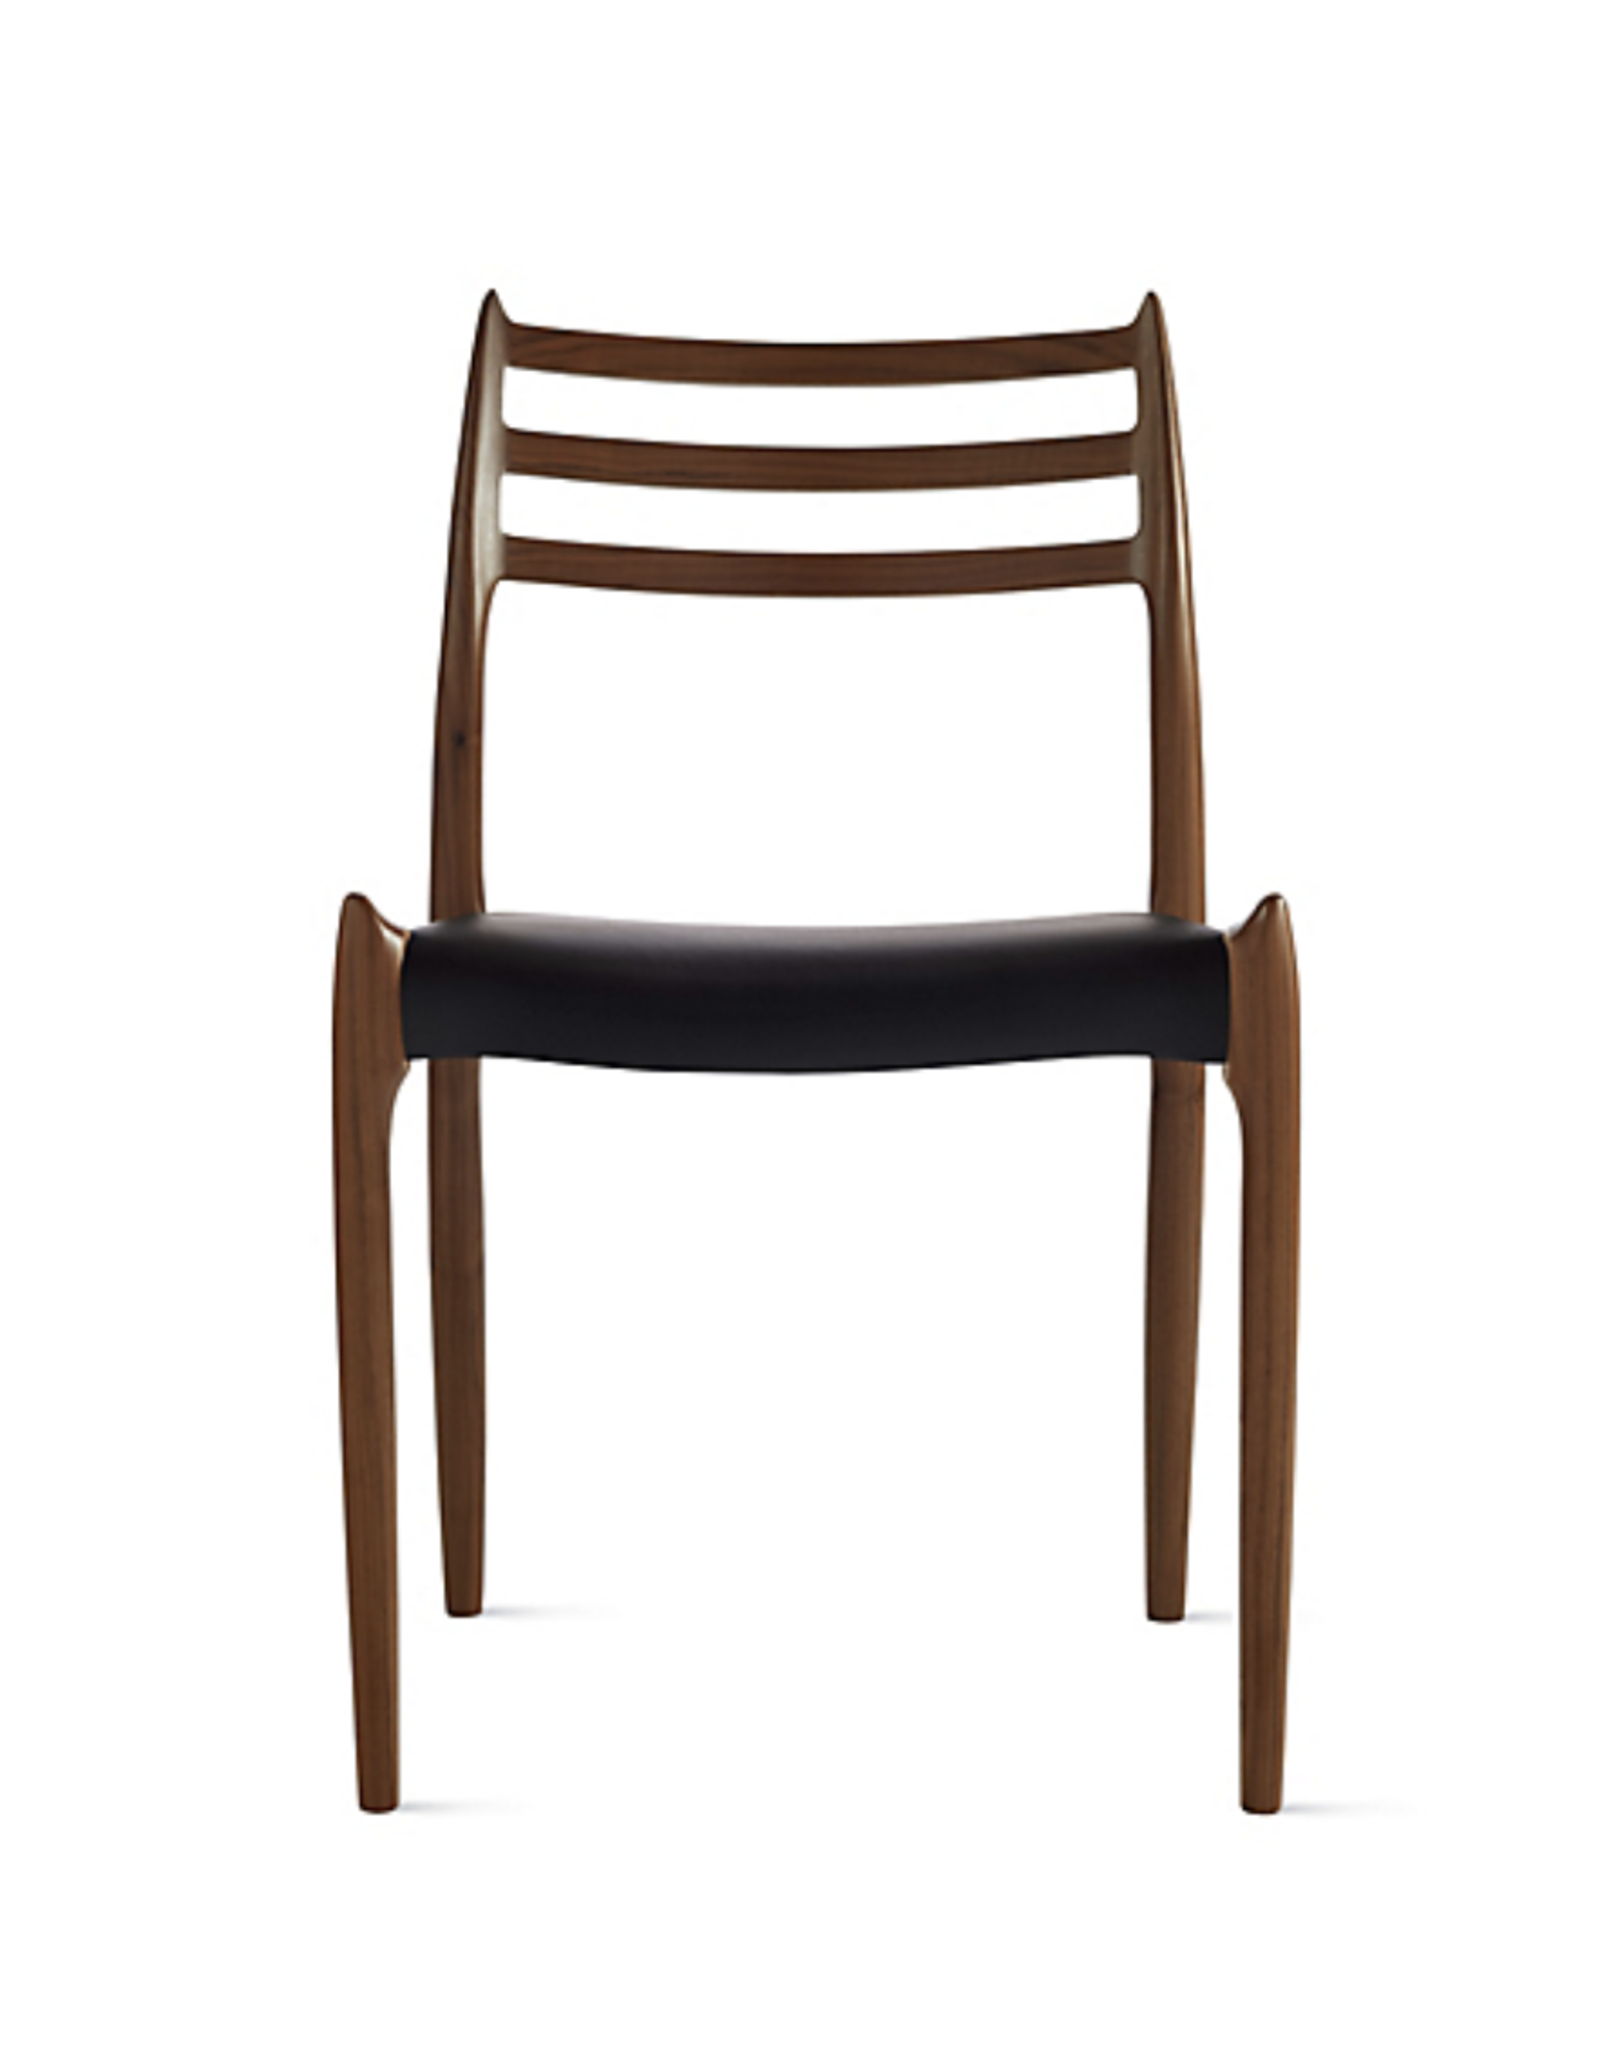 (DISPLAY) 1960'S PALISANDRE MODEL 78 DINING CHAIR WITH BLACK LEATHER SEAT BY NILS MOLLER